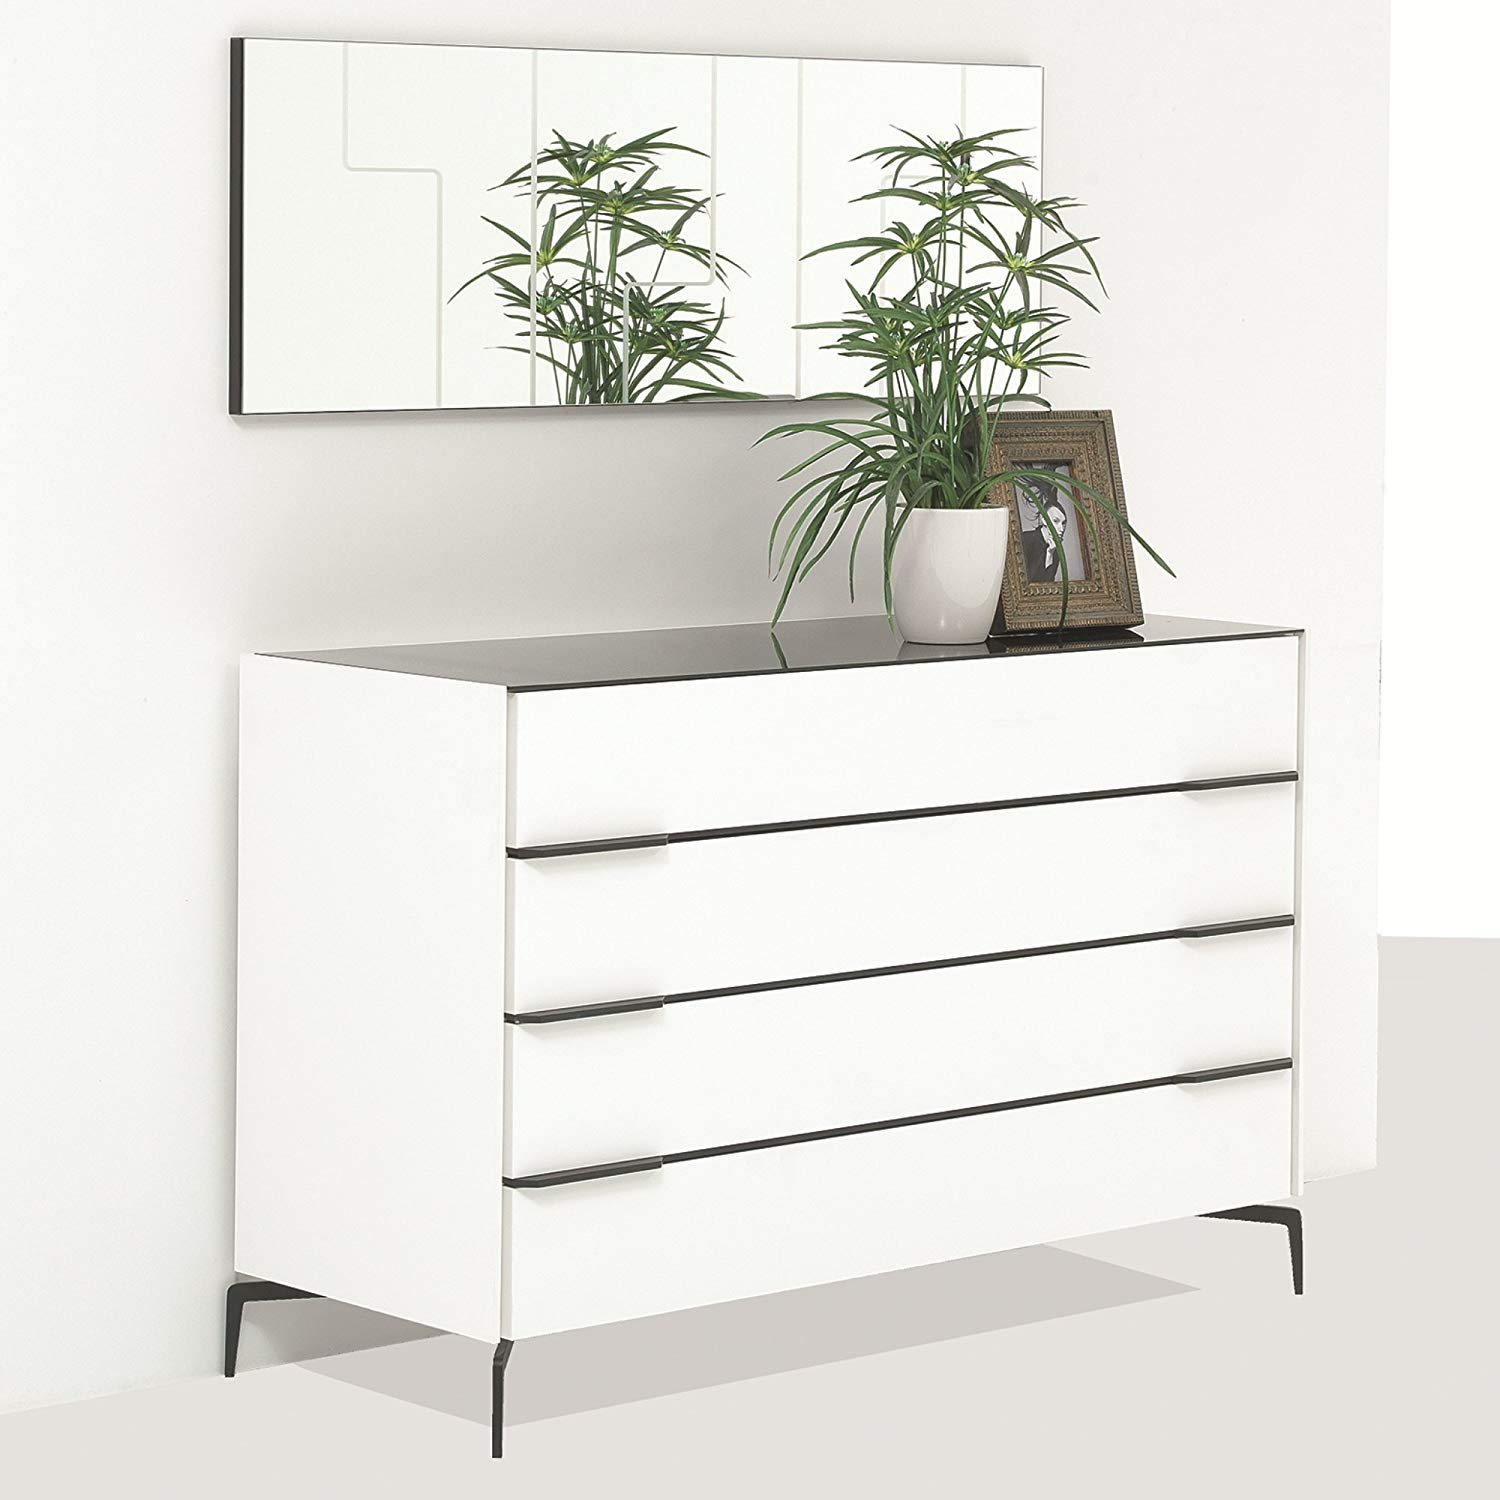 Adam and Illy COR0170 CORA Chest of Drawers W/Mirror, Glam Black/White